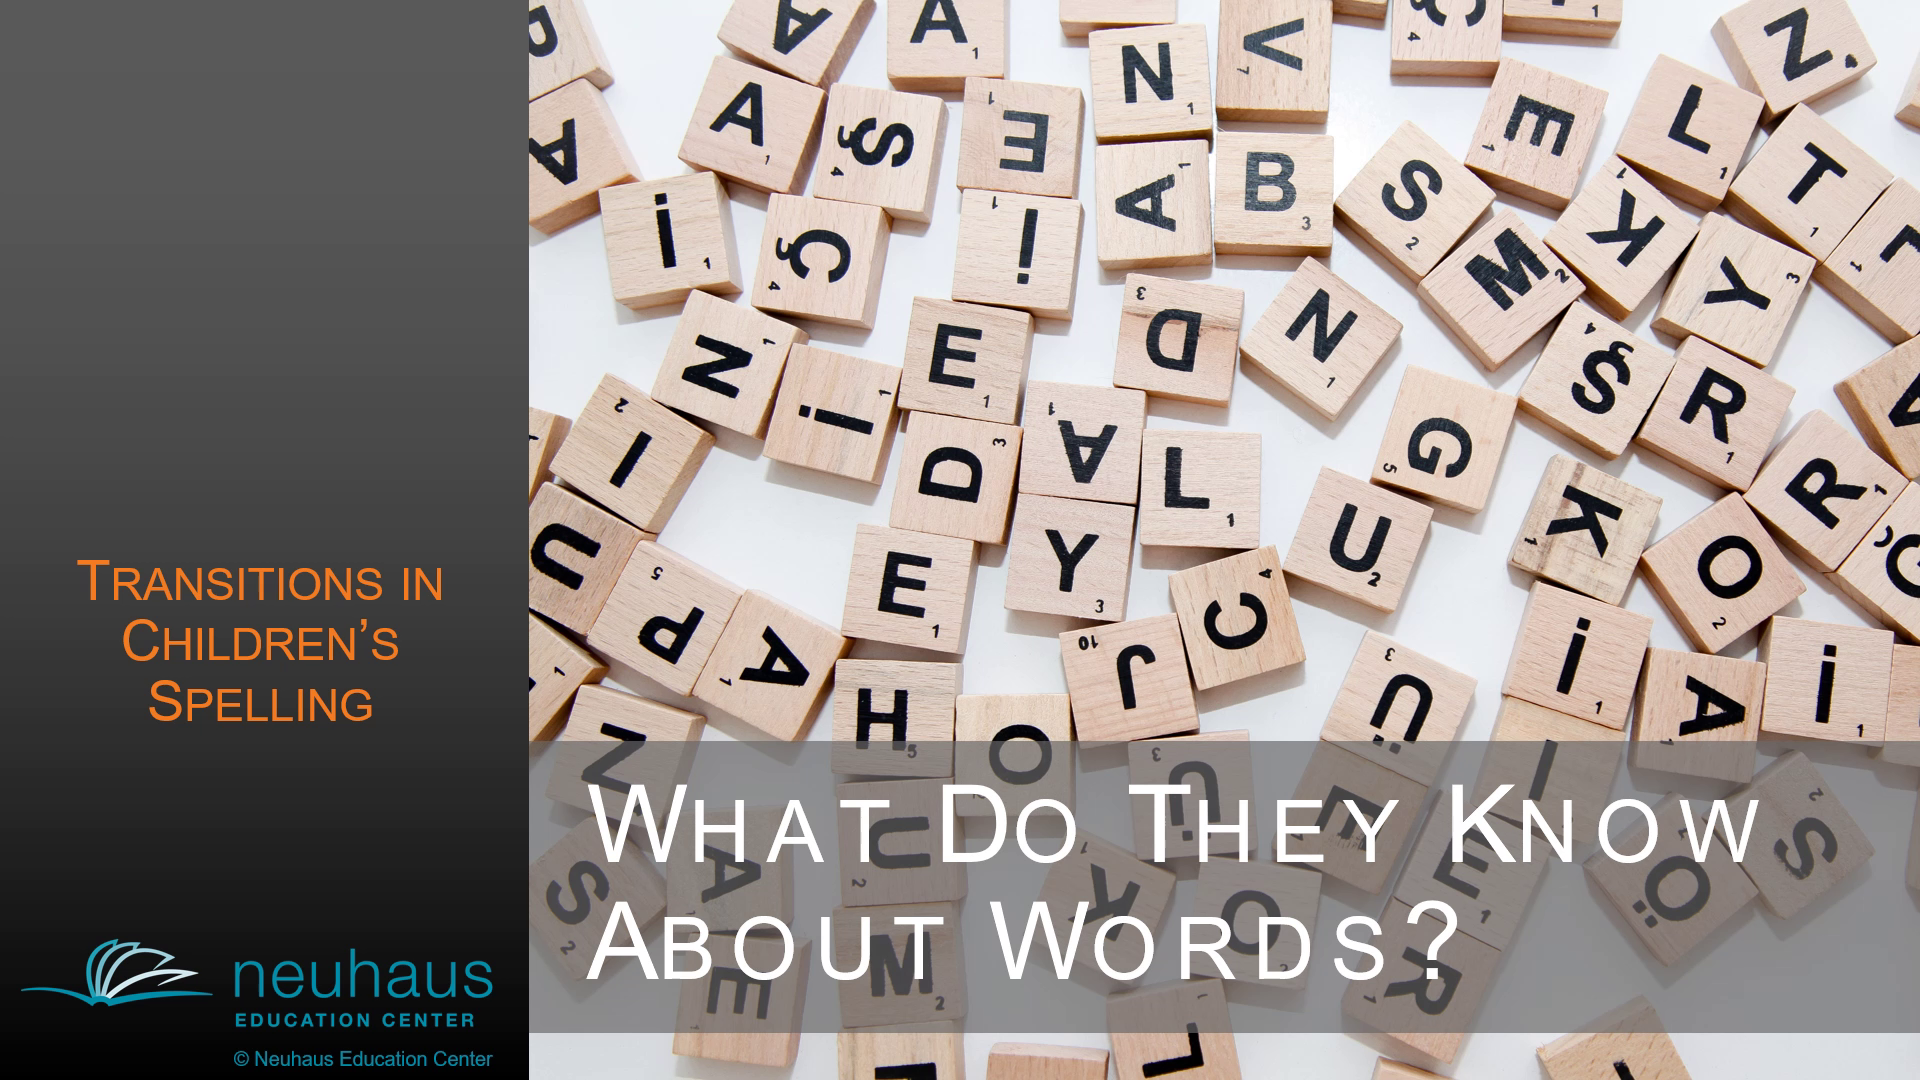 What Do They Know About Words? Transitions in Children's Spelling